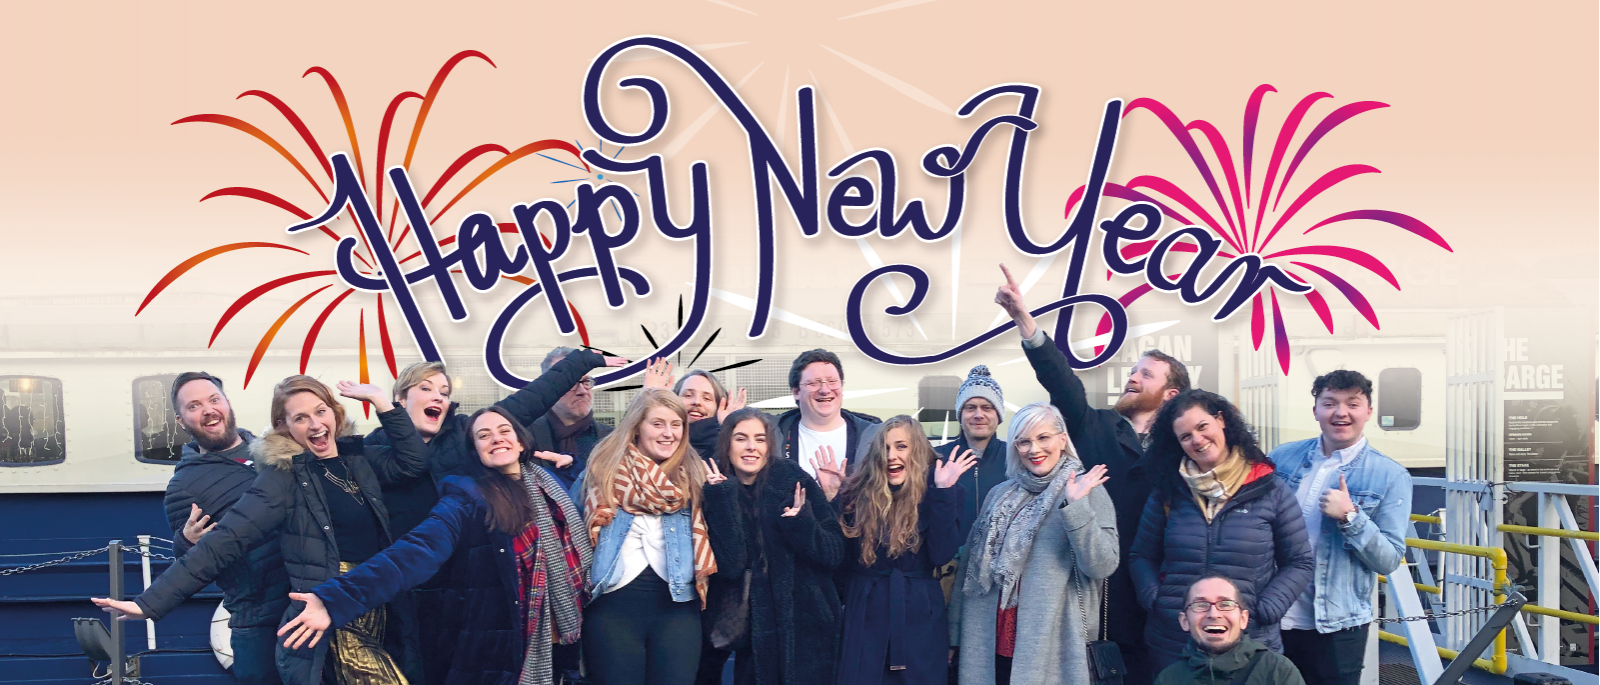 Happy new year from the Whitenoise team!